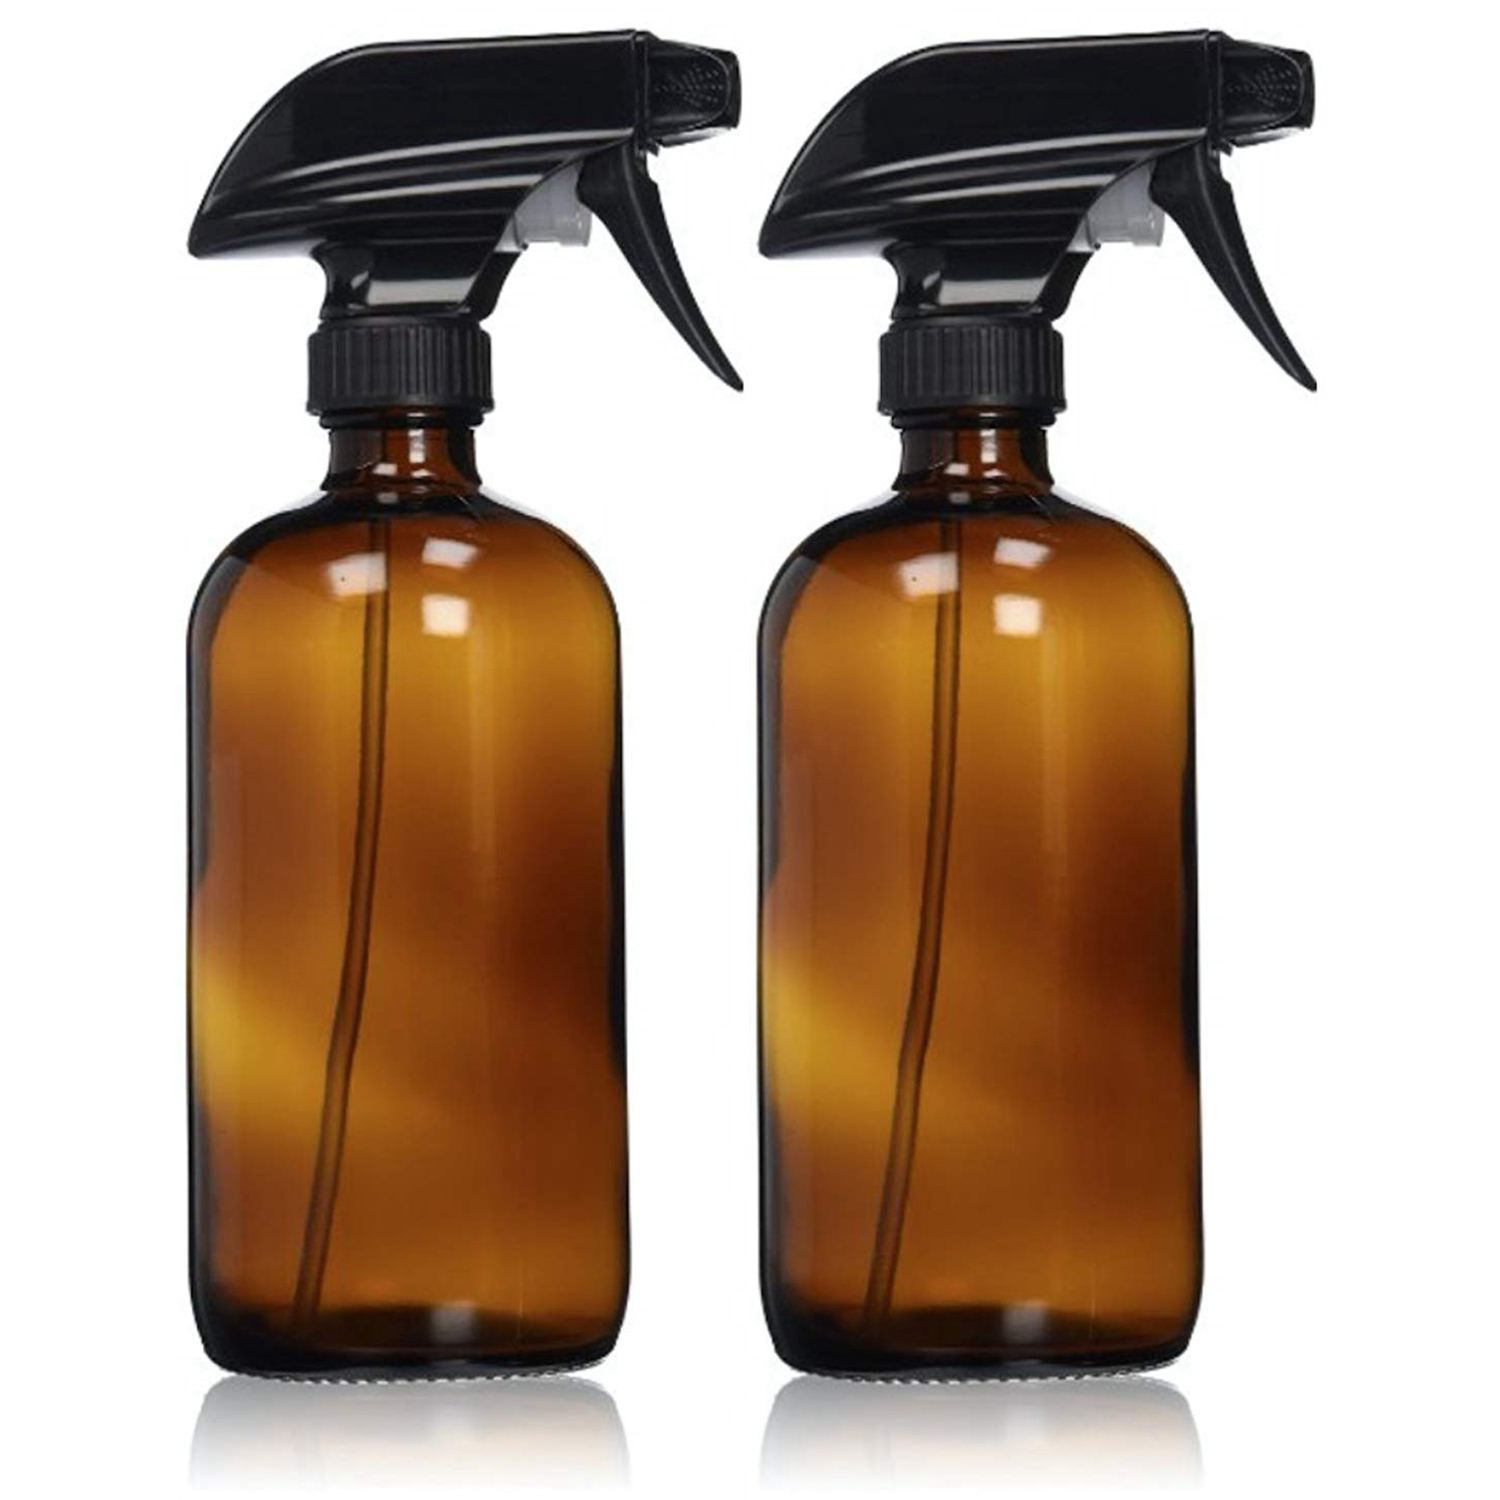 cee6fb28be2 Empty Amber Glass Spray Bottles with Labels (2 Pack) - Refillable Container  for Essential Oils Cleaning Products or Aromathe